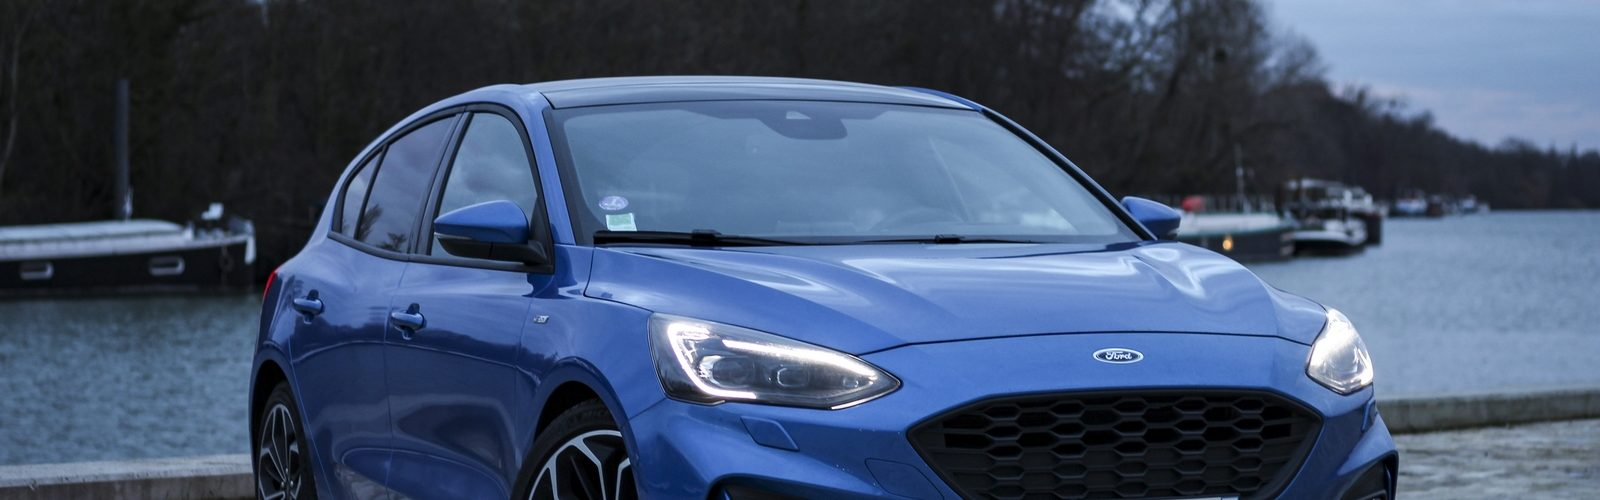 Ford Focus St Line_11